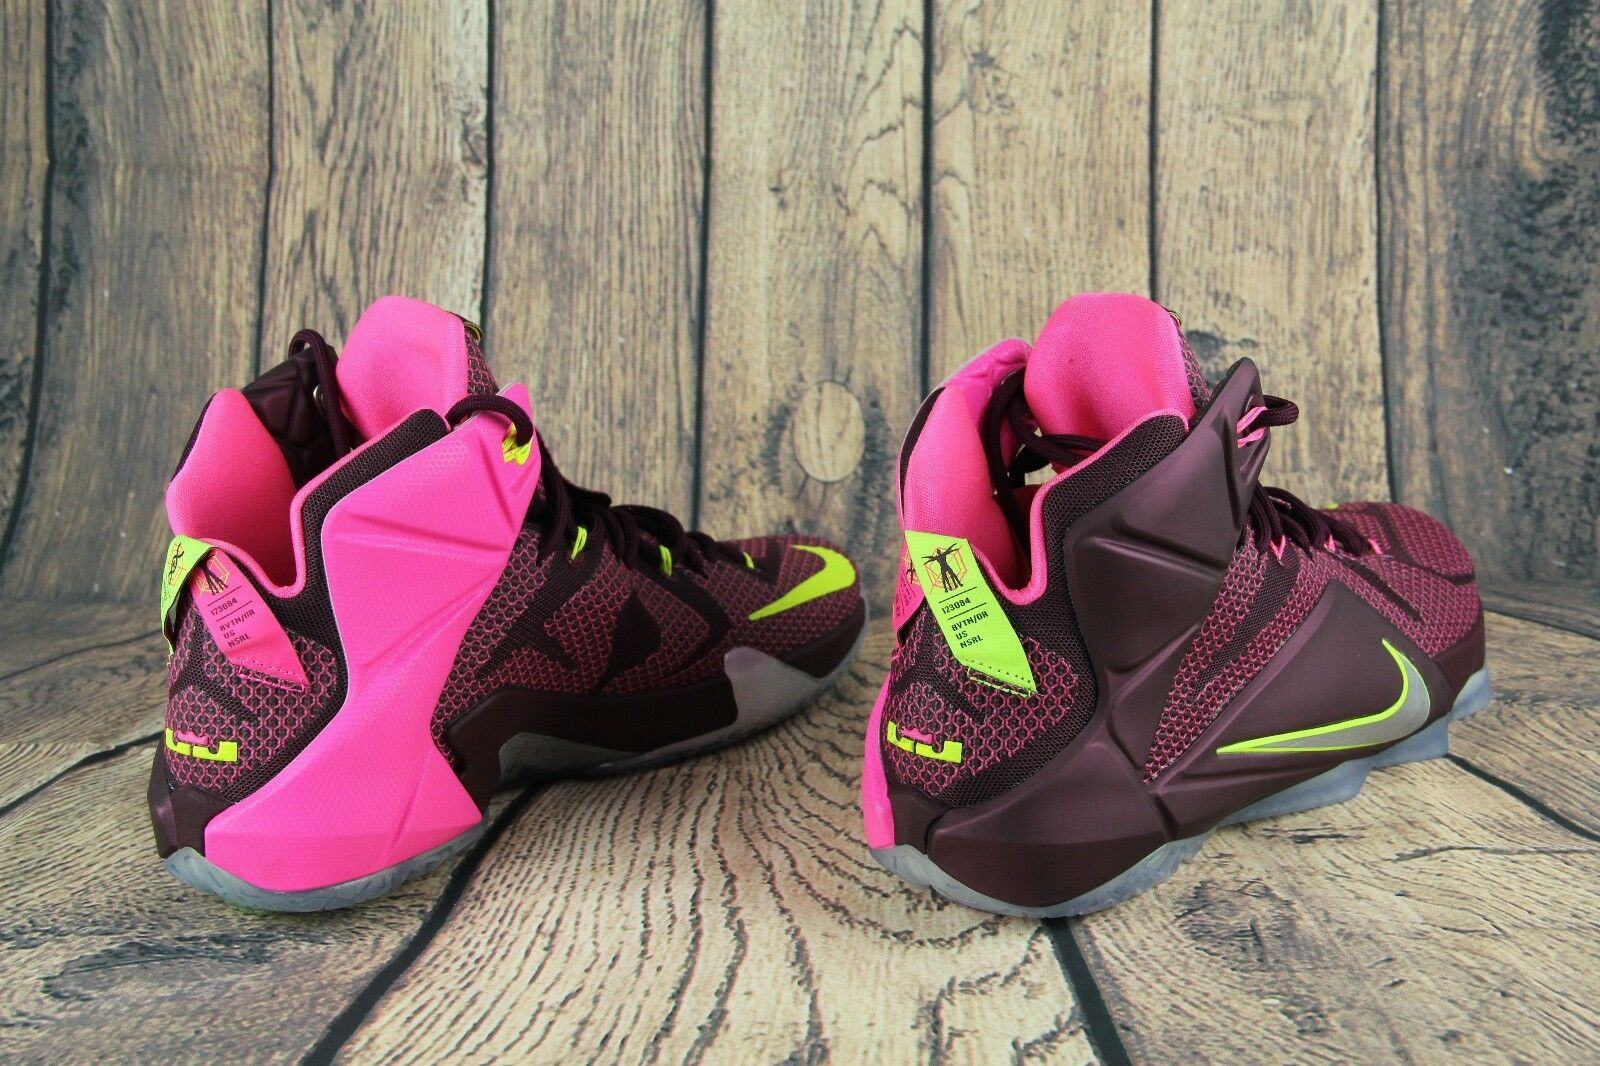 Nike Nike Nike Lebron 12 XII DOUBLE HELIX Mens Basketball shoes 684593-607 Size 10.5 NEW dccb08